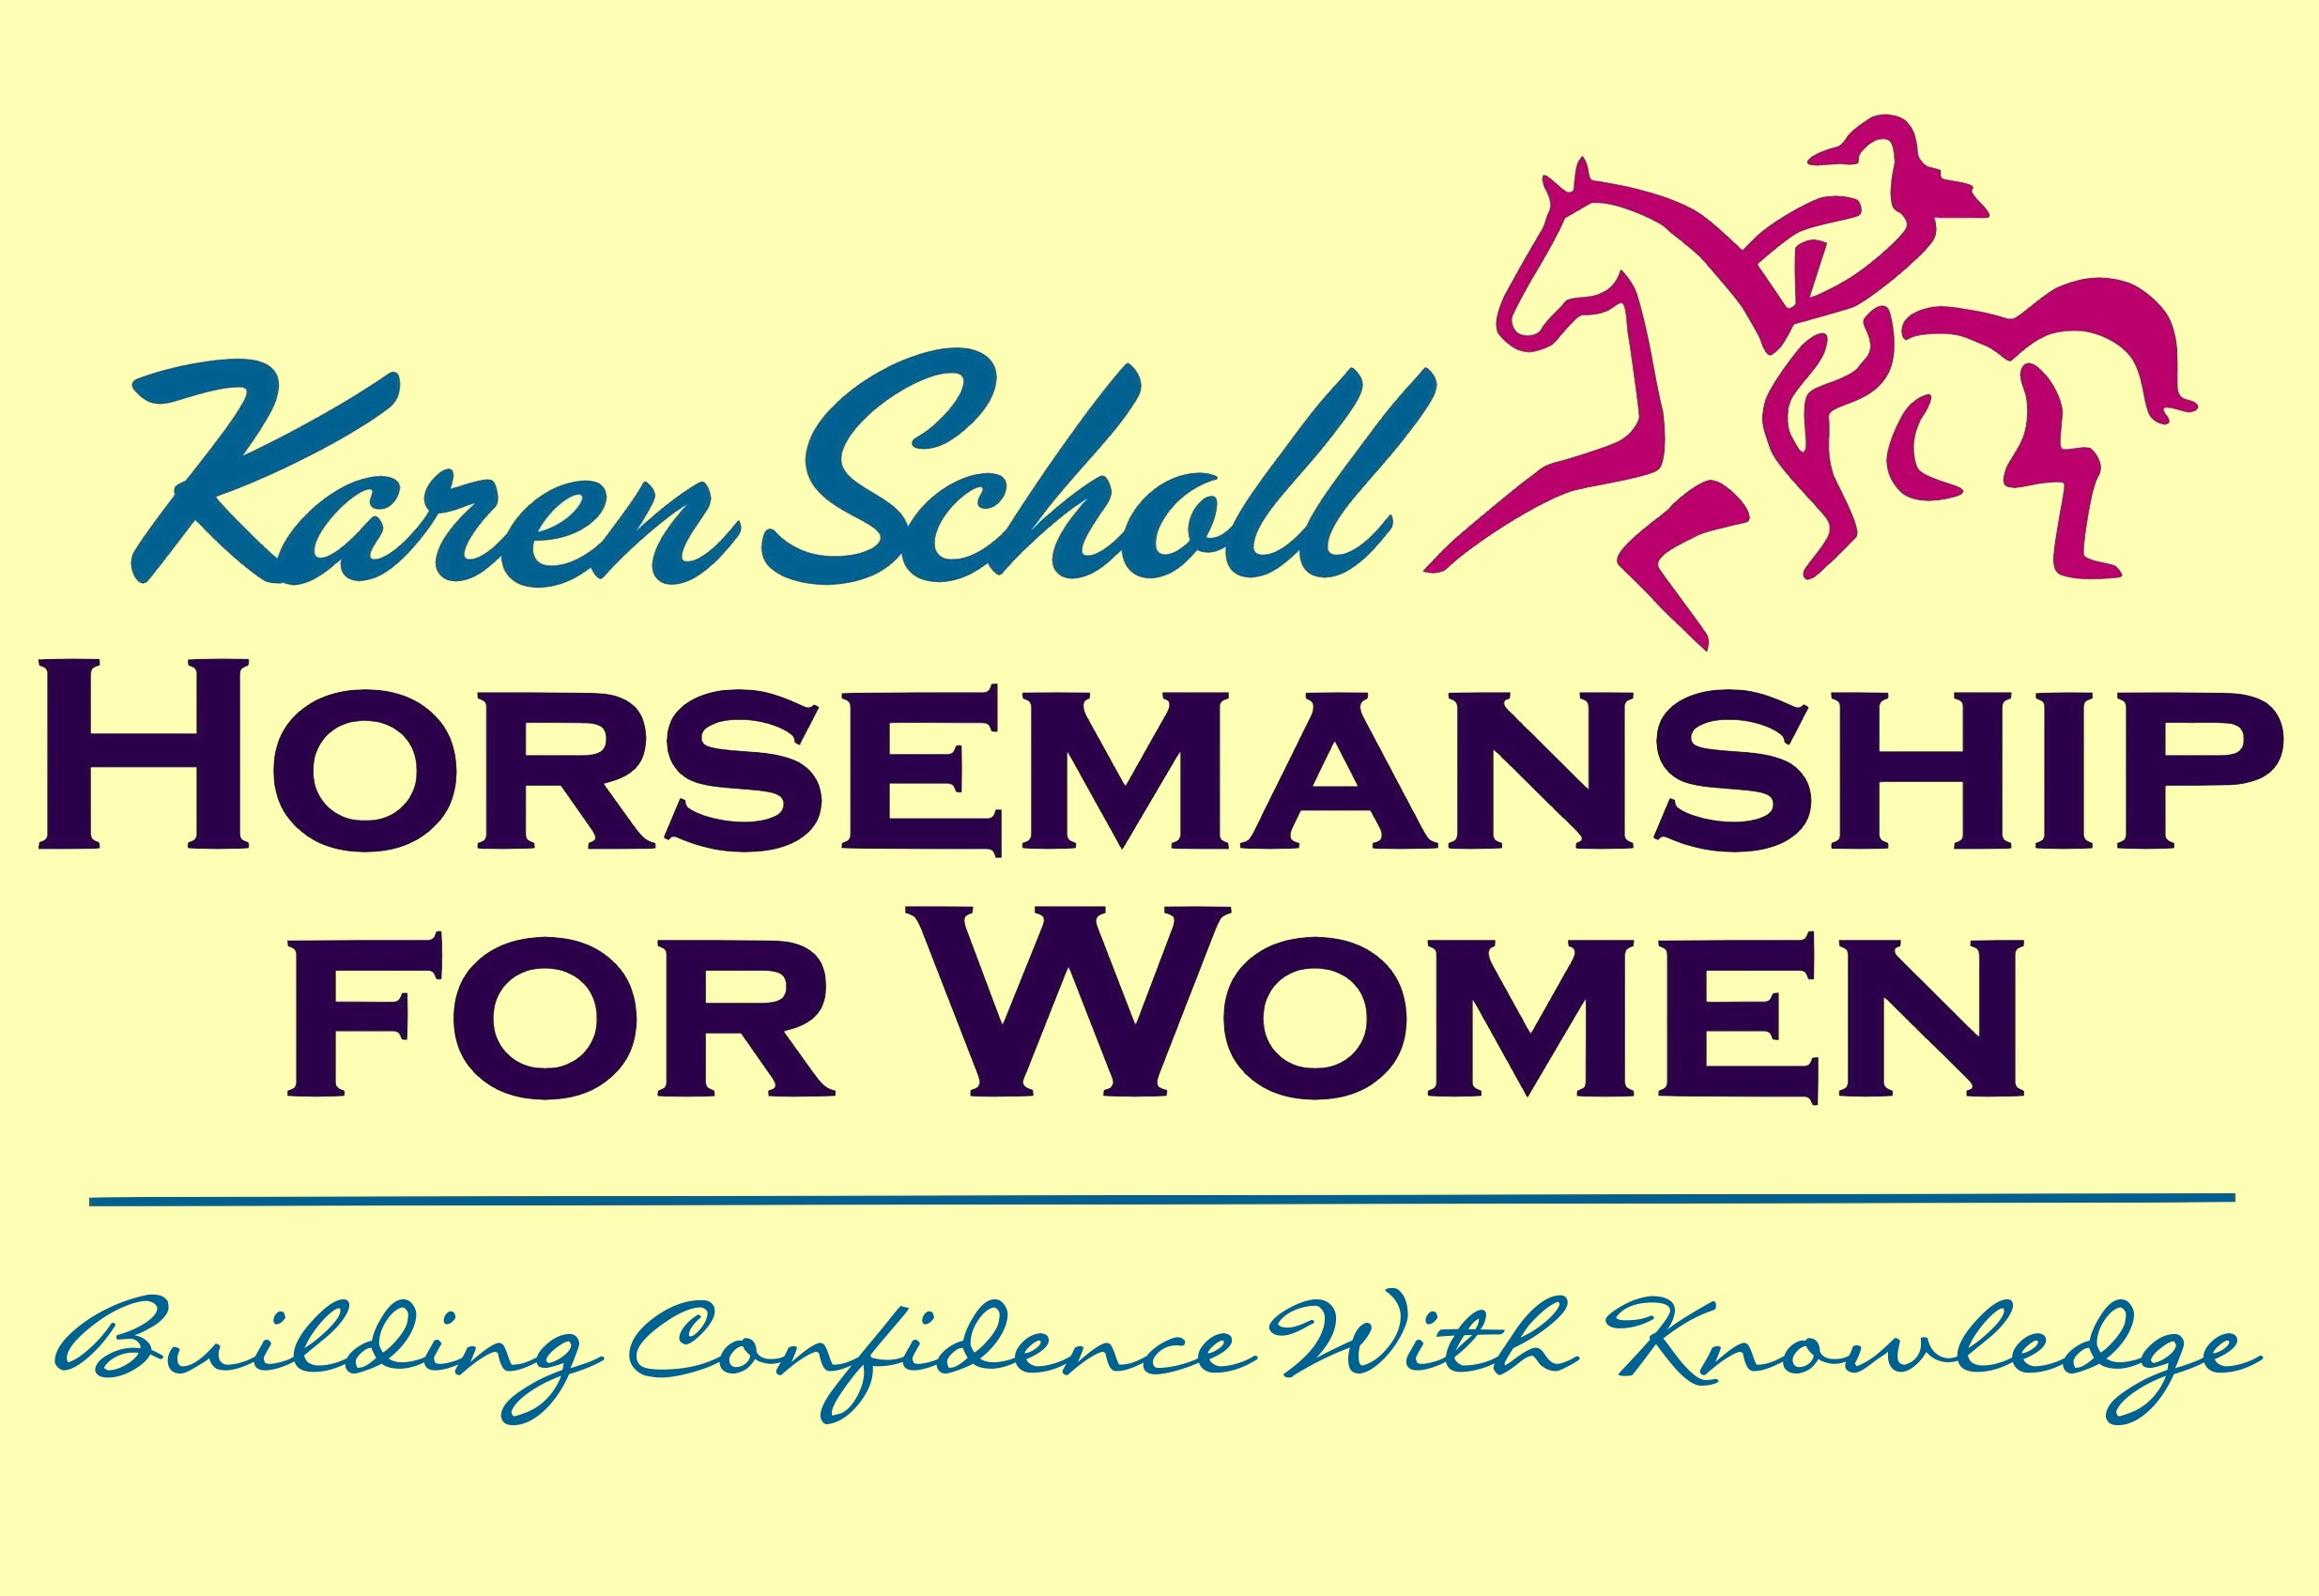 Karen Scholl - horsemanship for women